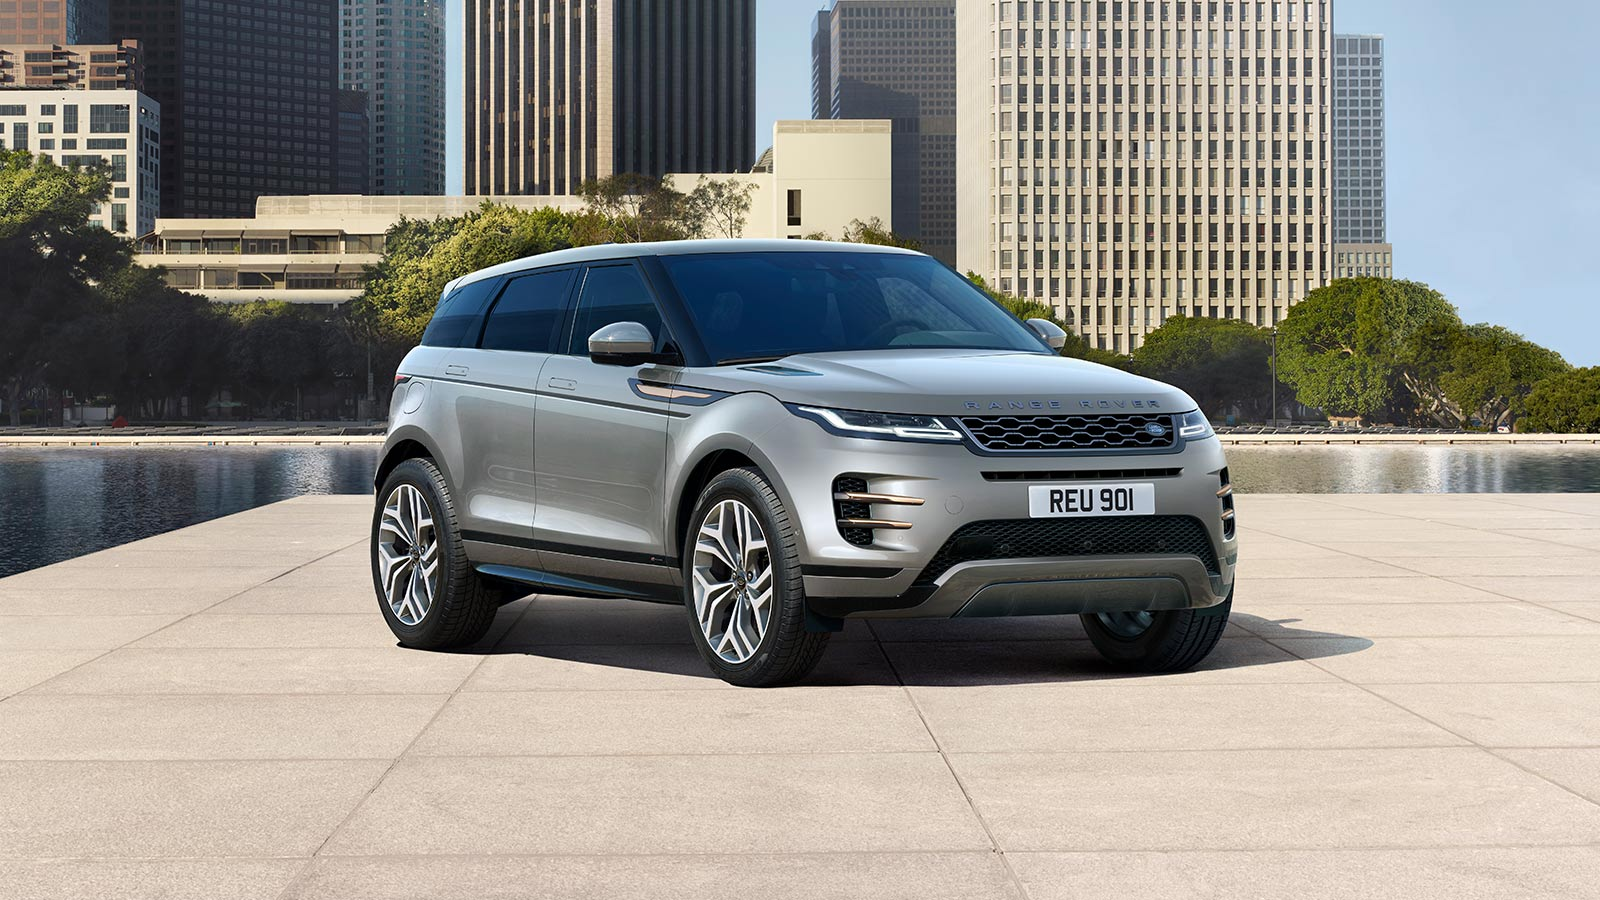 NEW RANGE ROVER EVOQUE R-DYNAMIC HSE